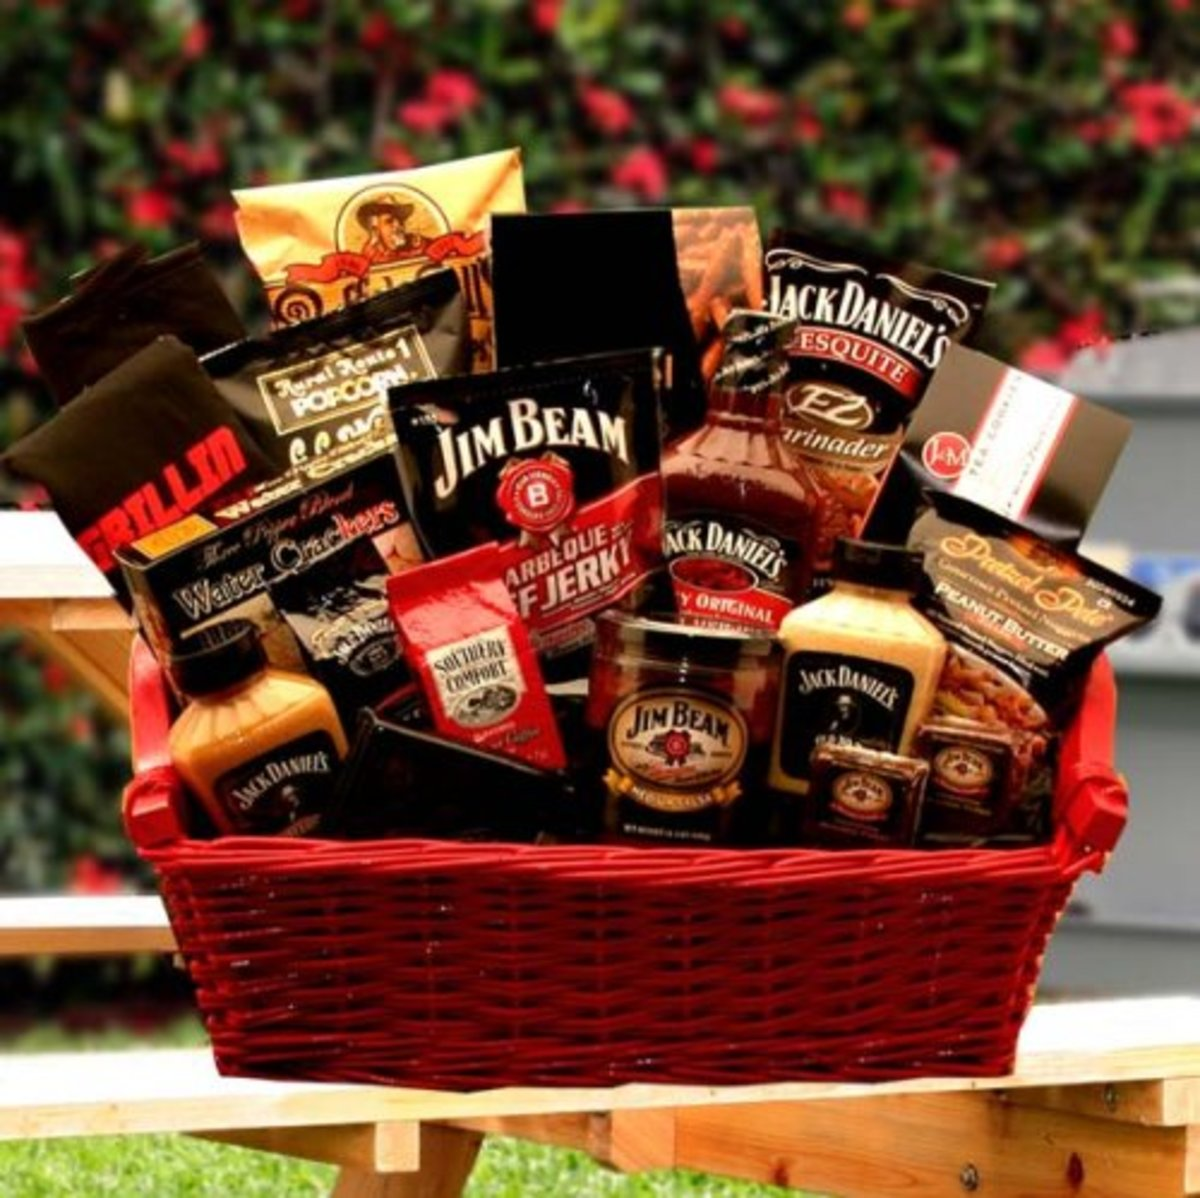 A great gift basket for southern food fans!